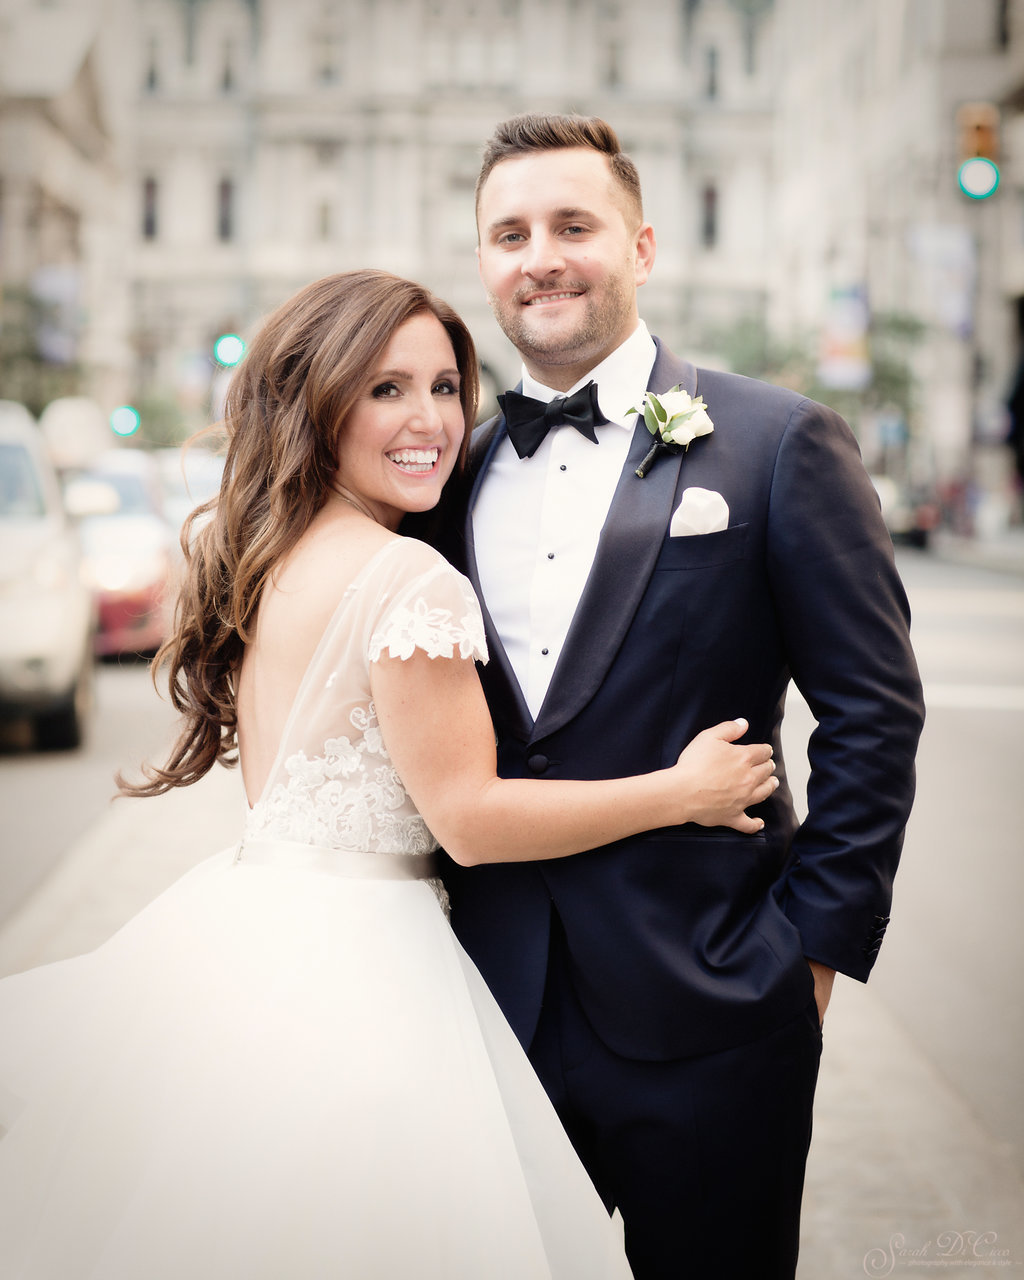 The Logan Philadelphia Wedding Planned by The Styled Bride | www.thestyledbride.com